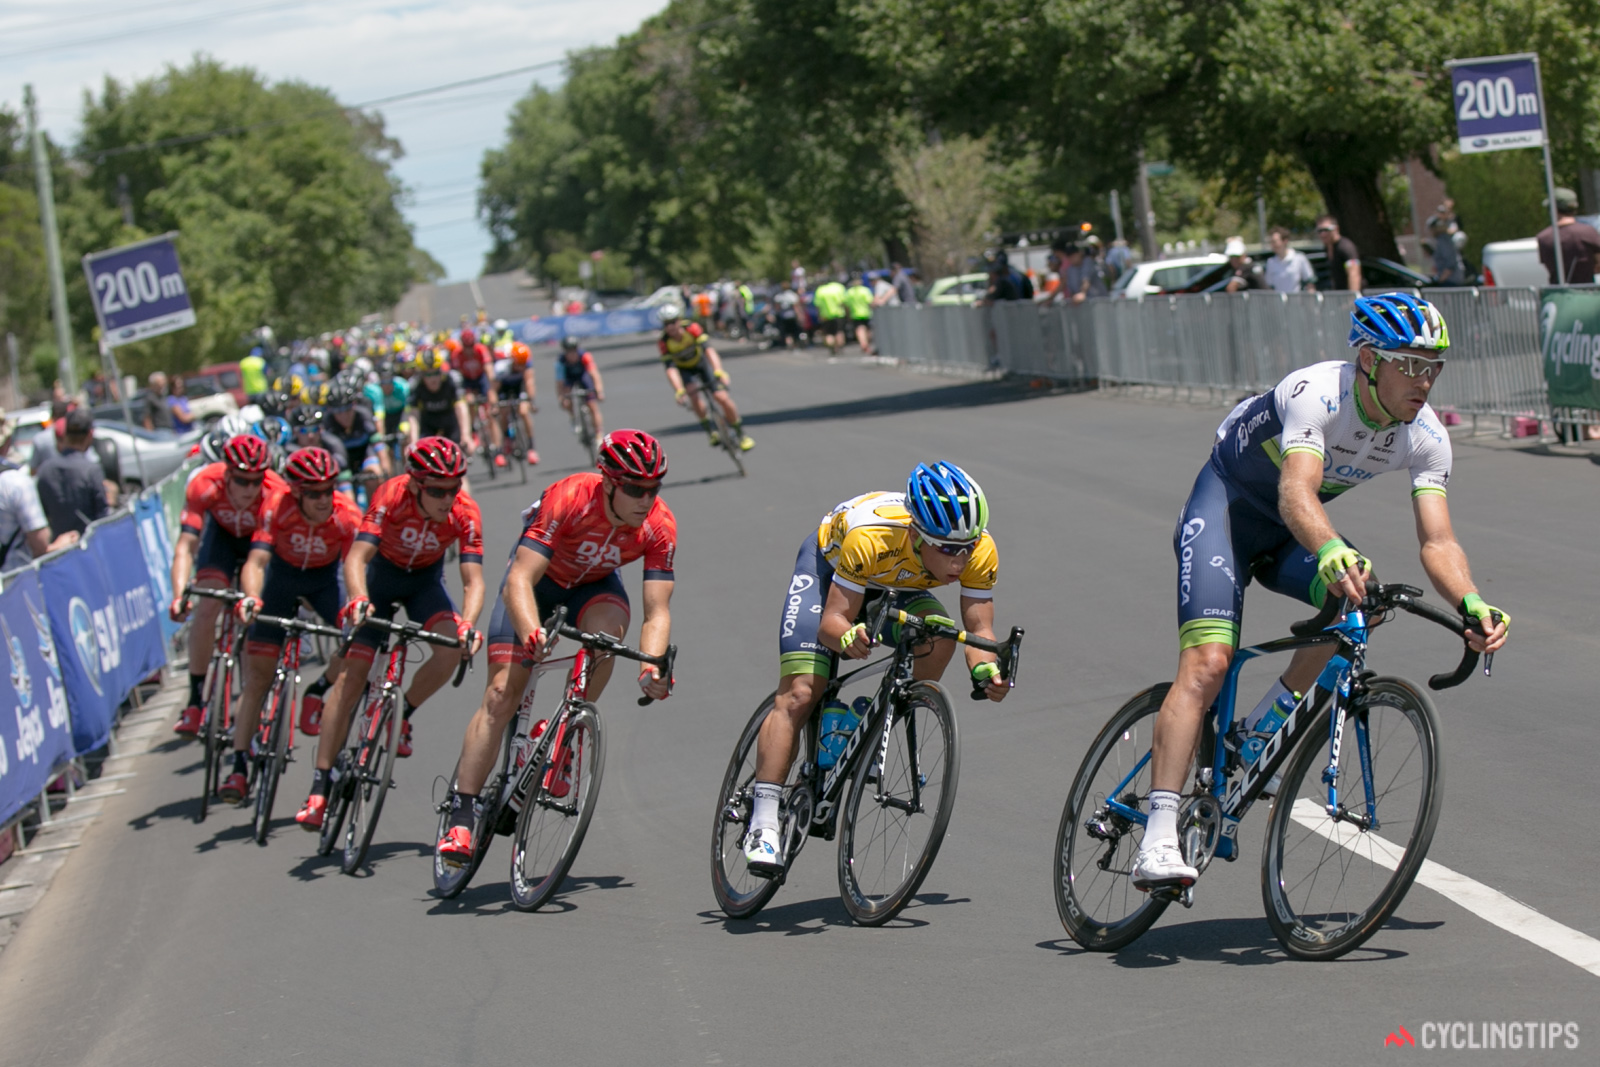 Take note of how far it is from the final corner to the finish line and position yourself accordingly in the final sprint.